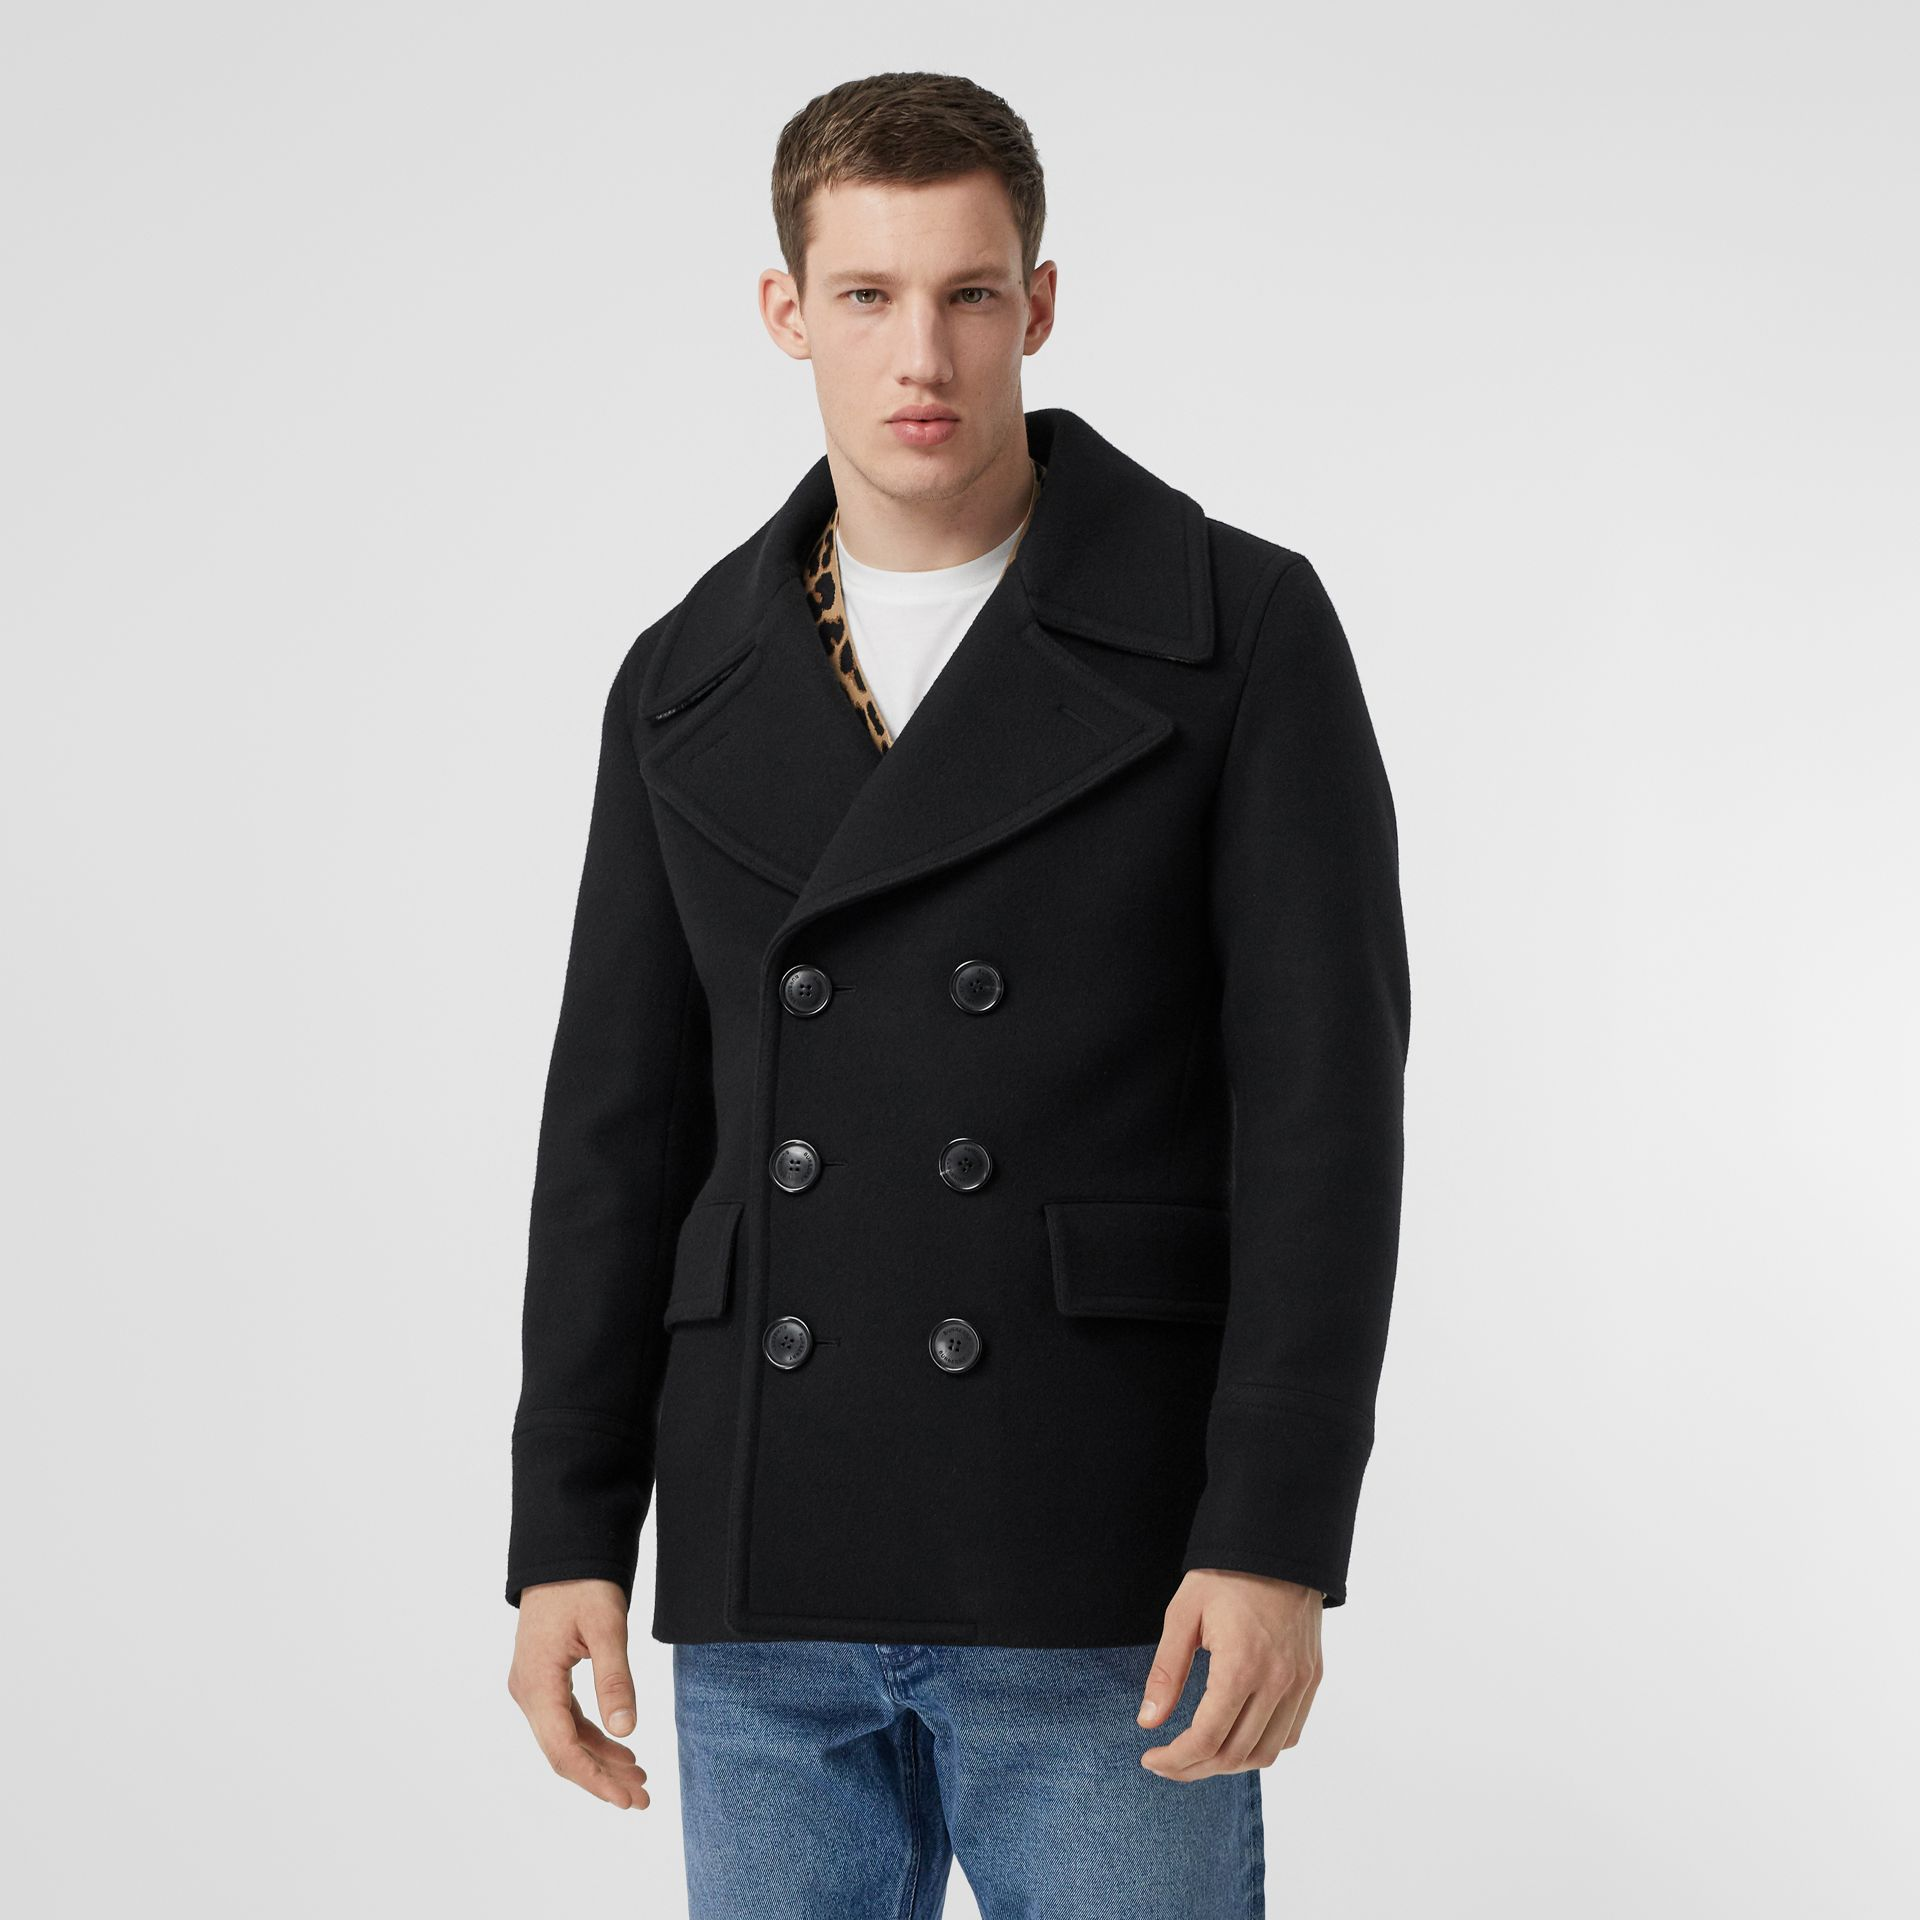 Wool Blend Pea Coat in Black - Men | Burberry Canada - gallery image 5